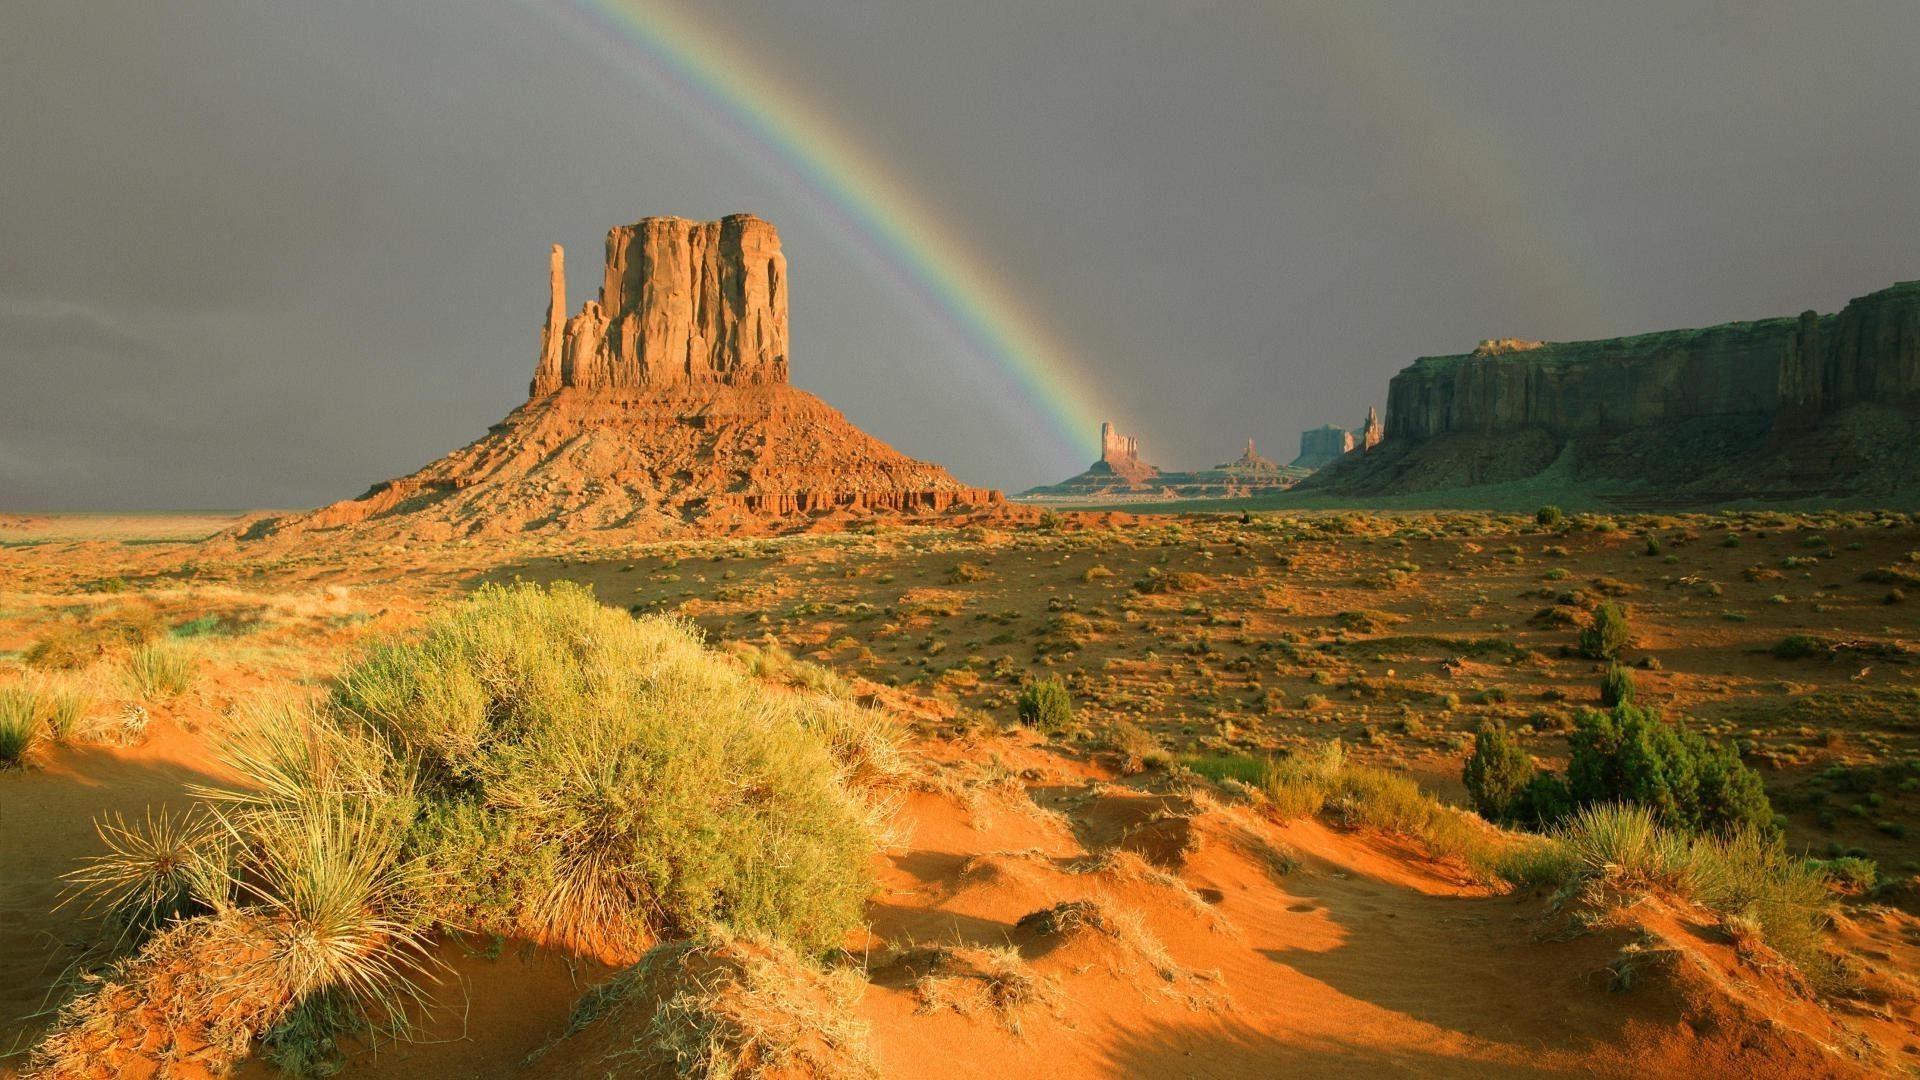 Rainbow in the steppe